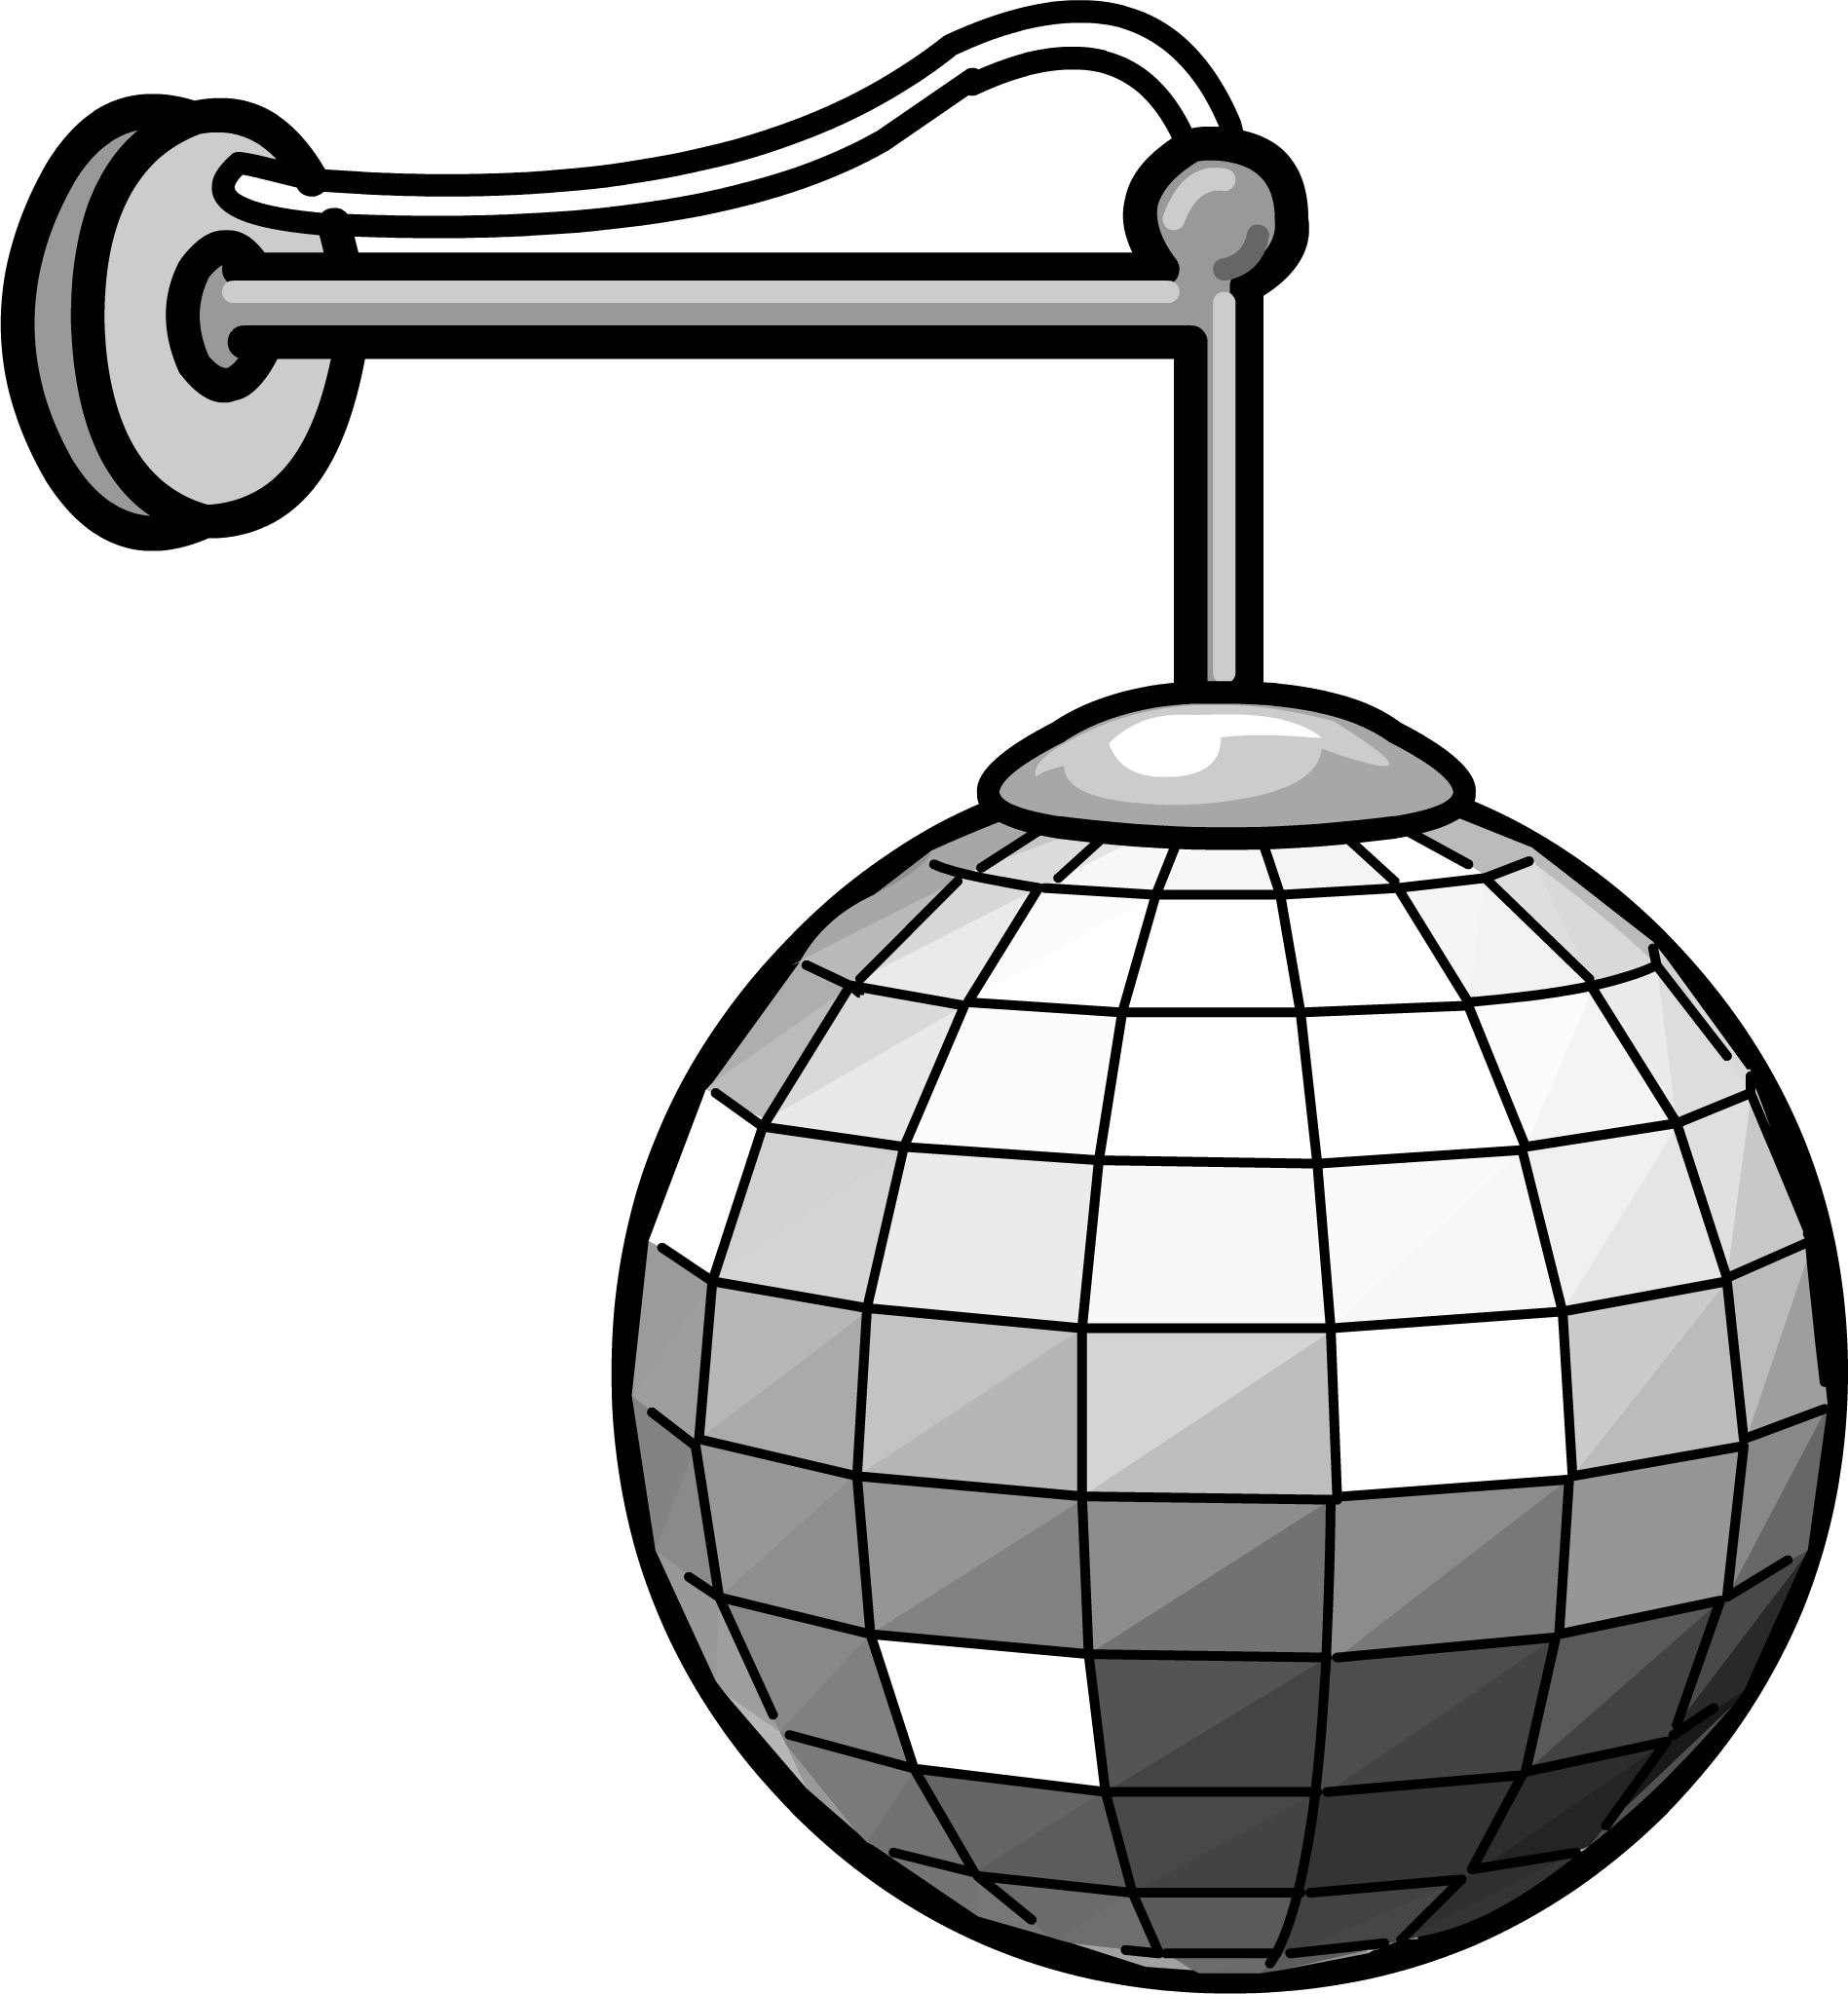 Club clipart disco club. Image ball sprite png